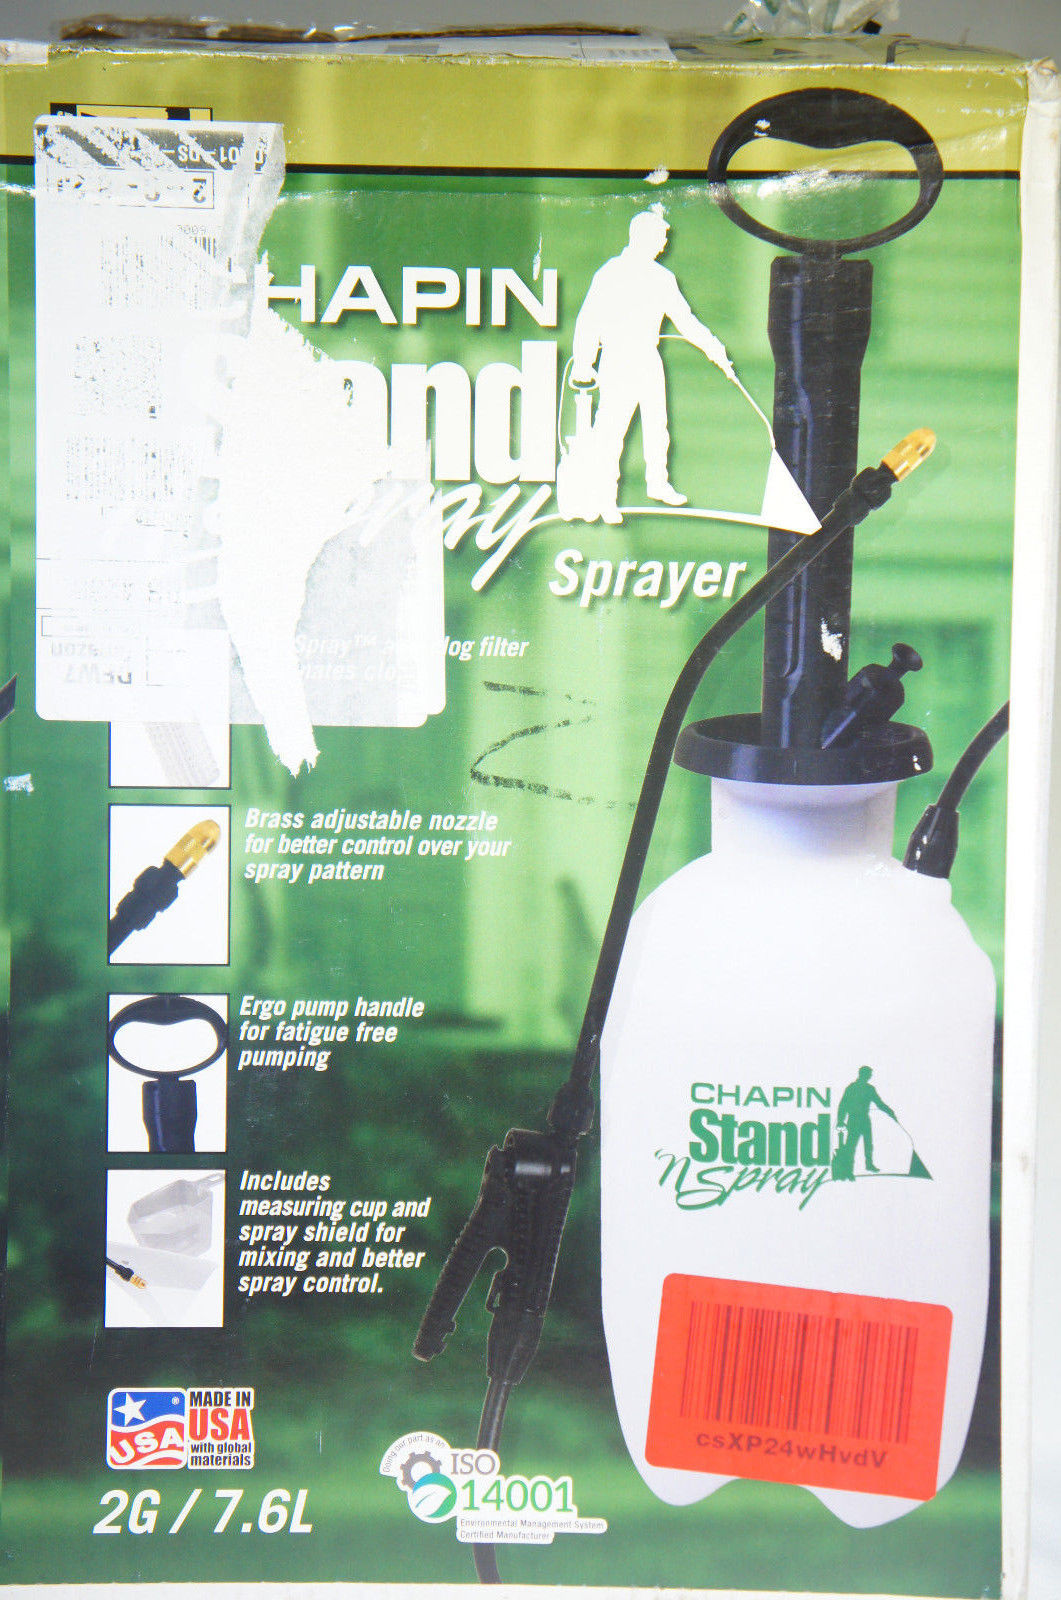 Chapin 29002 2 Gallon Stand 'N Spray No Bend Sprayer For Multi-purpose Use (Like New)